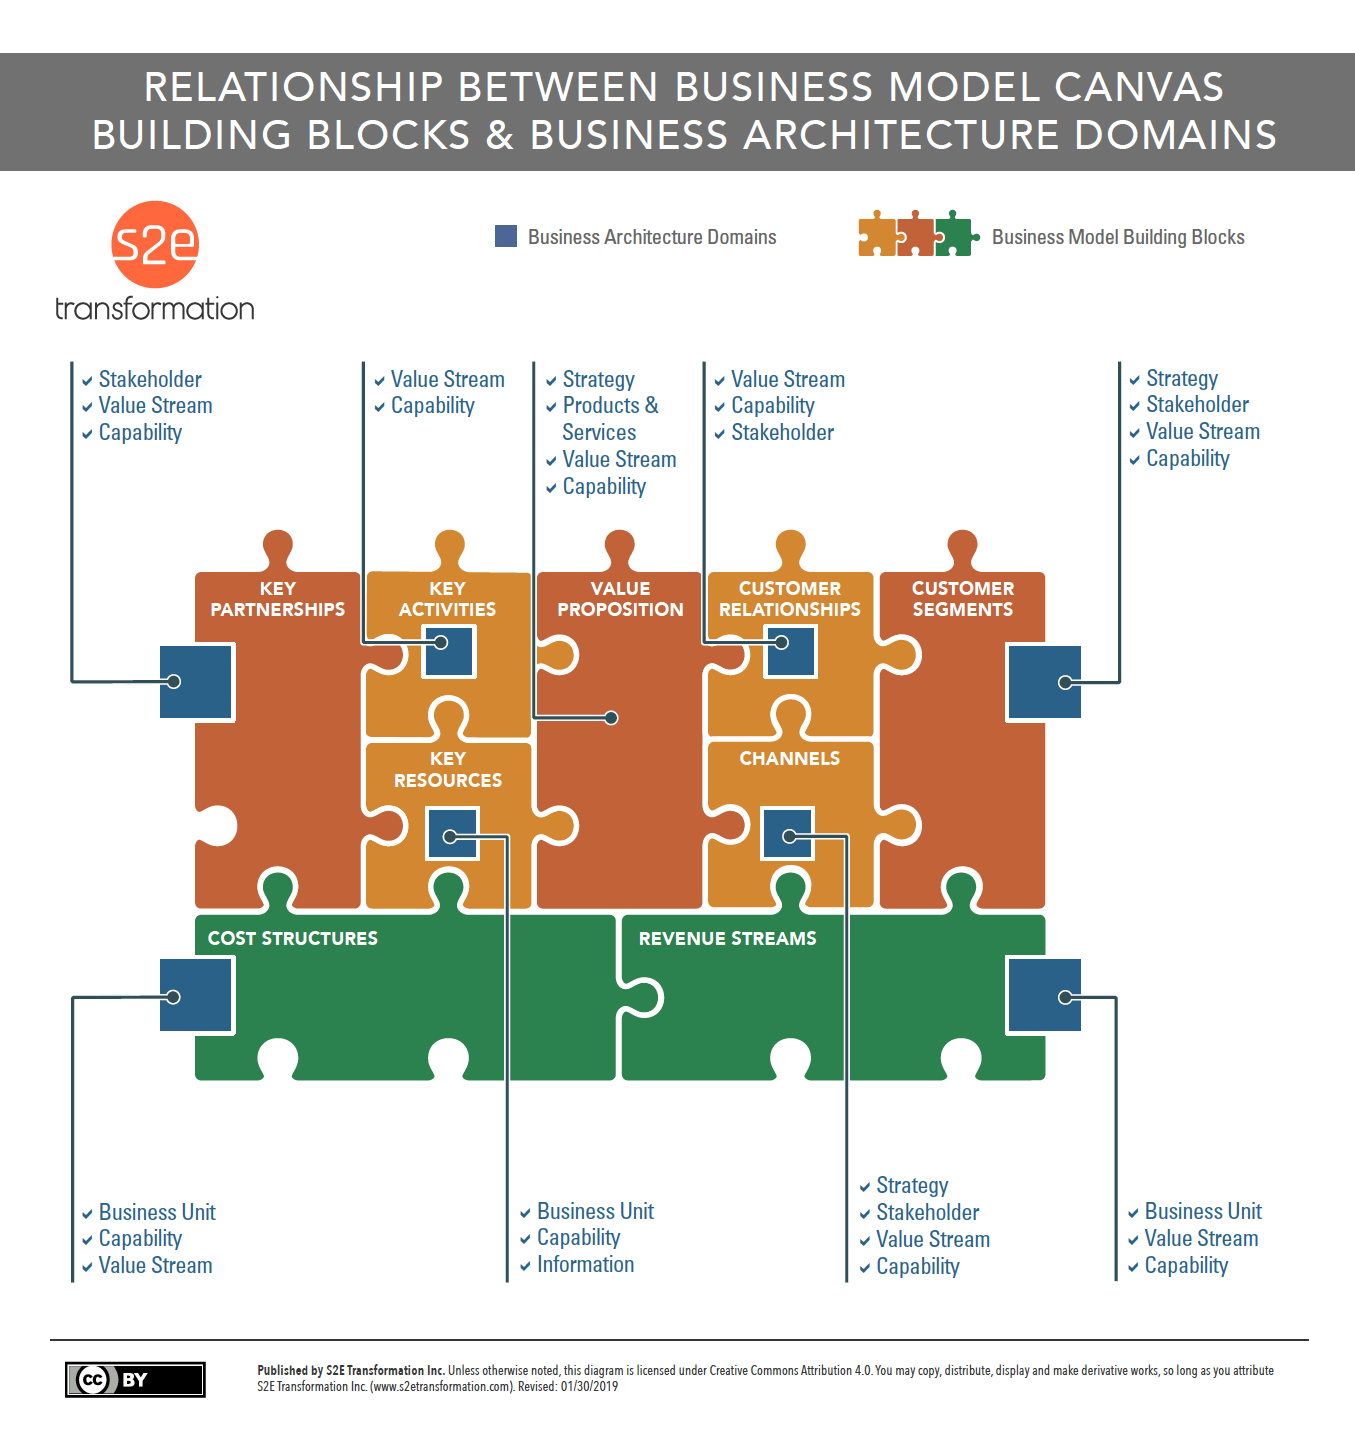 Business Models and Business Architecture Domains